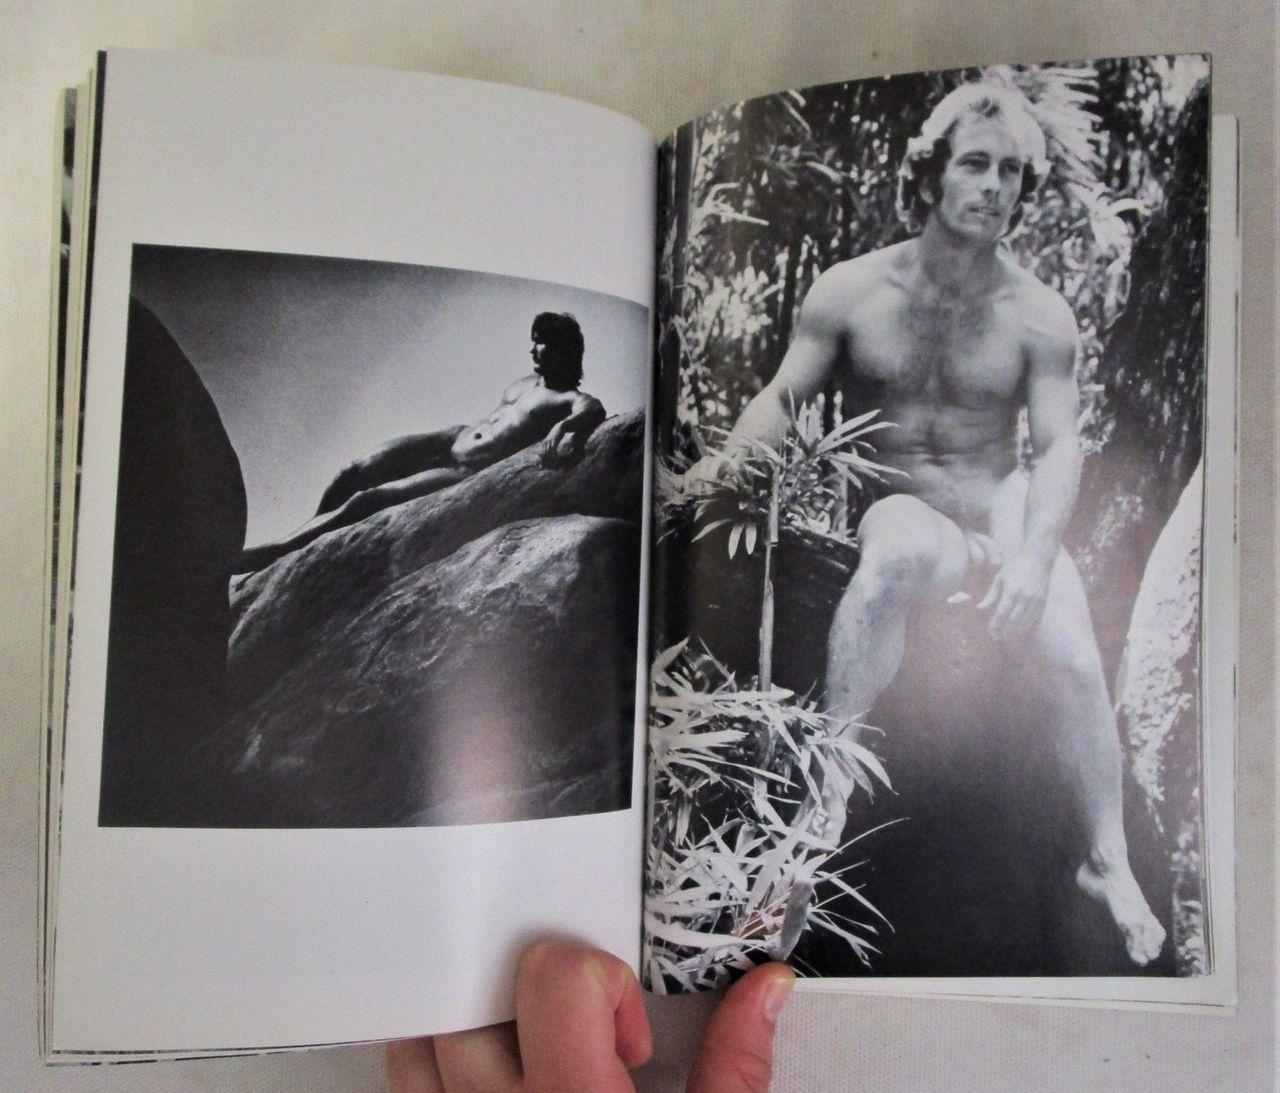 A WORLD OF NUDES, by Roy Dean - 1975 [1st Ed]